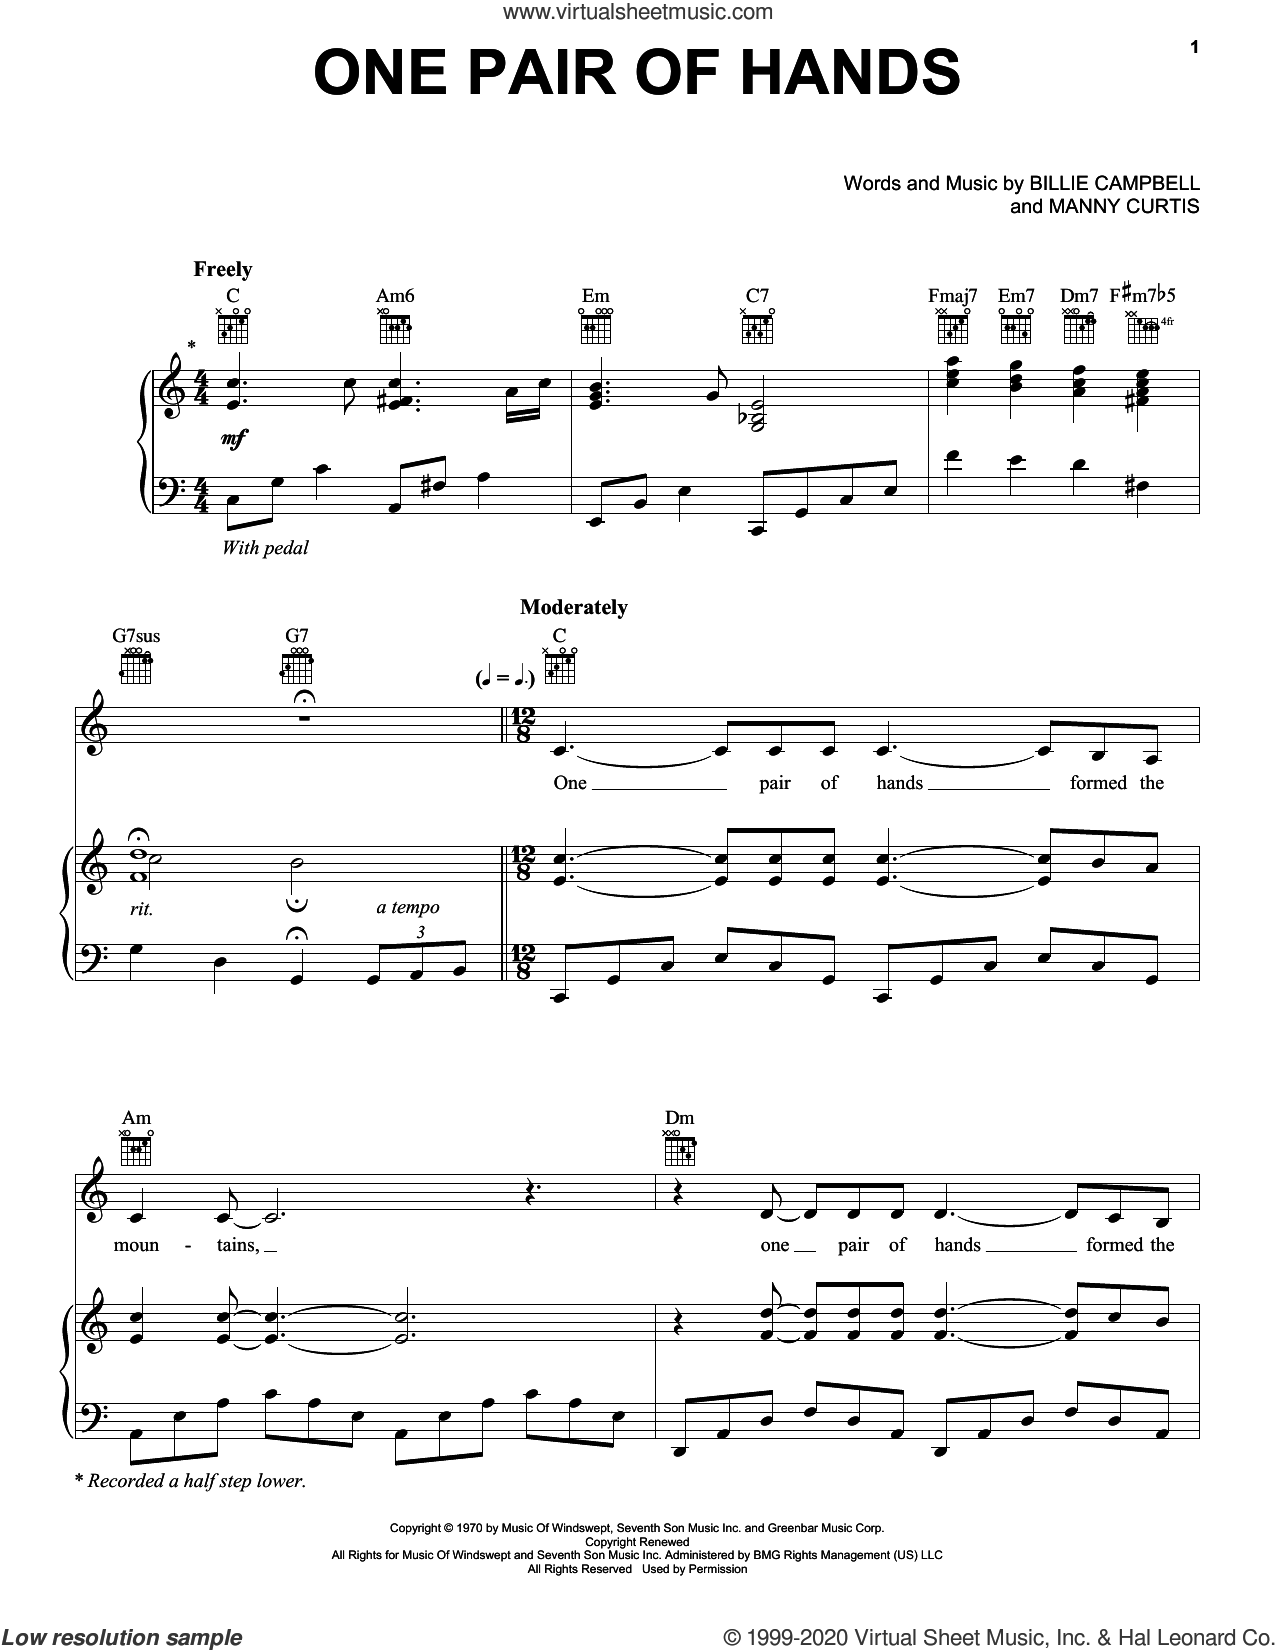 One Pair Of Hands sheet music for voice, piano or guitar by Carroll Roberson, Billie Campbell and Manny Curtis, intermediate skill level